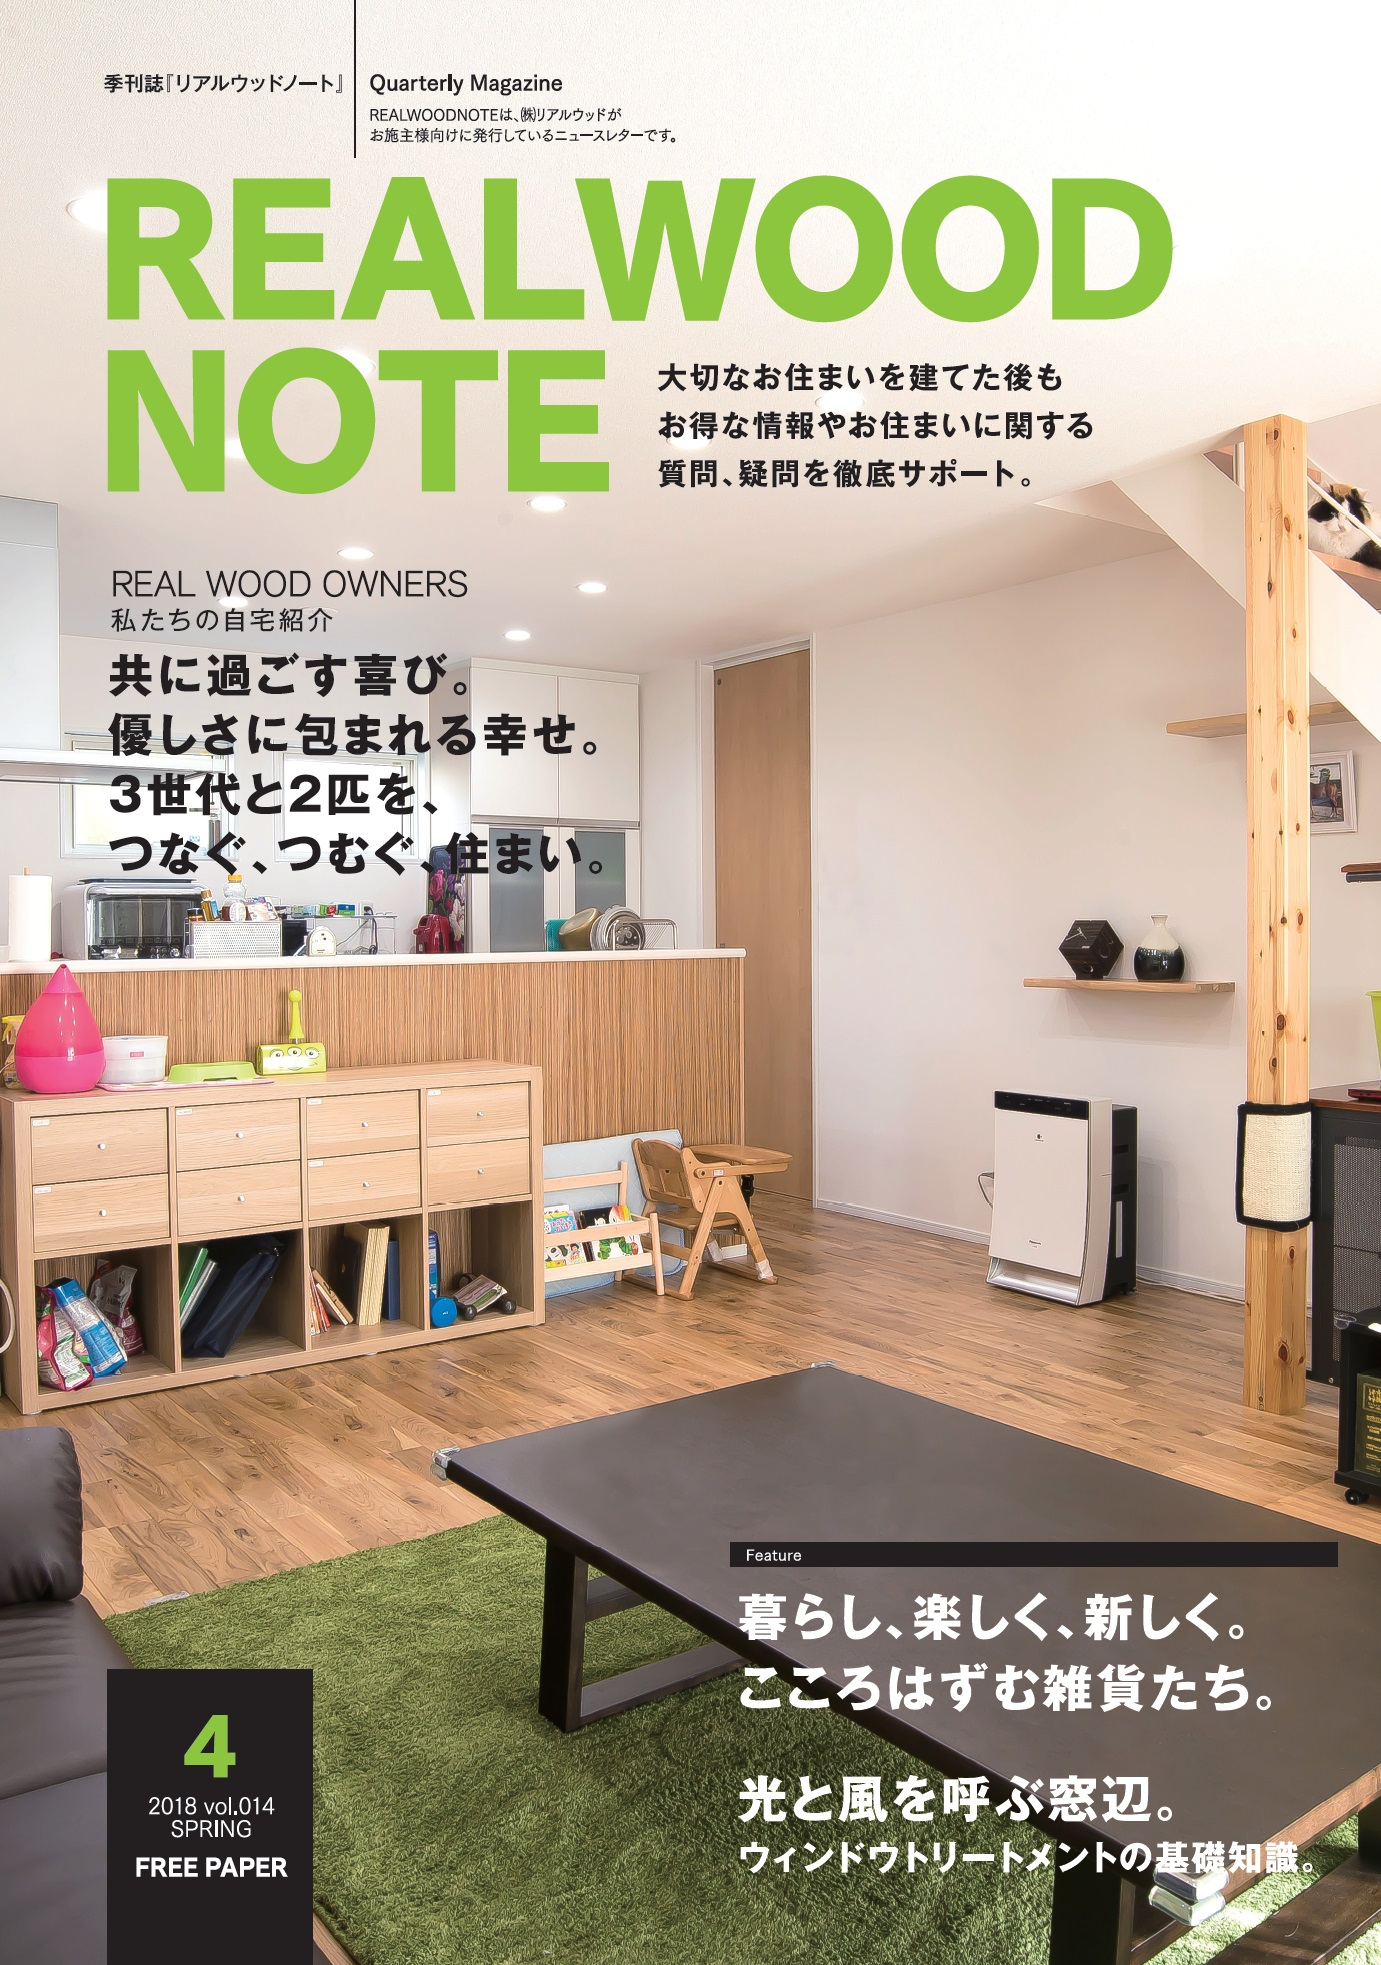 REALWOOD NOTE 2018年 春季号